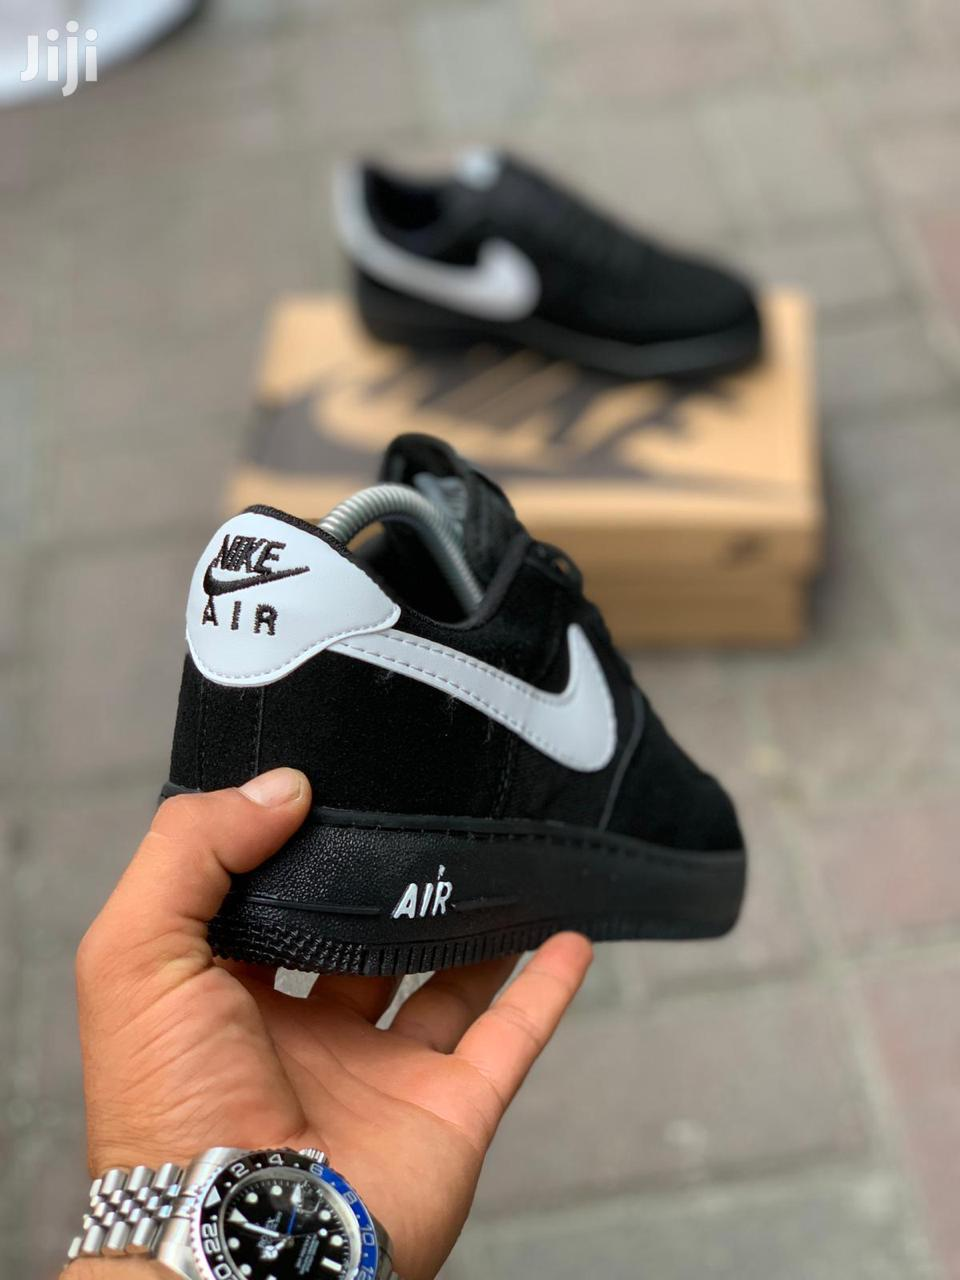 Diverso Intensivo Tener cuidado  Quality Vans X Nike in Kisii Central - Shoes, Nyakundi Investment |  Jiji.co.ke for sale in Kisii Central | Buy Shoes from Nyakundi Investment  on Jiji.co.ke